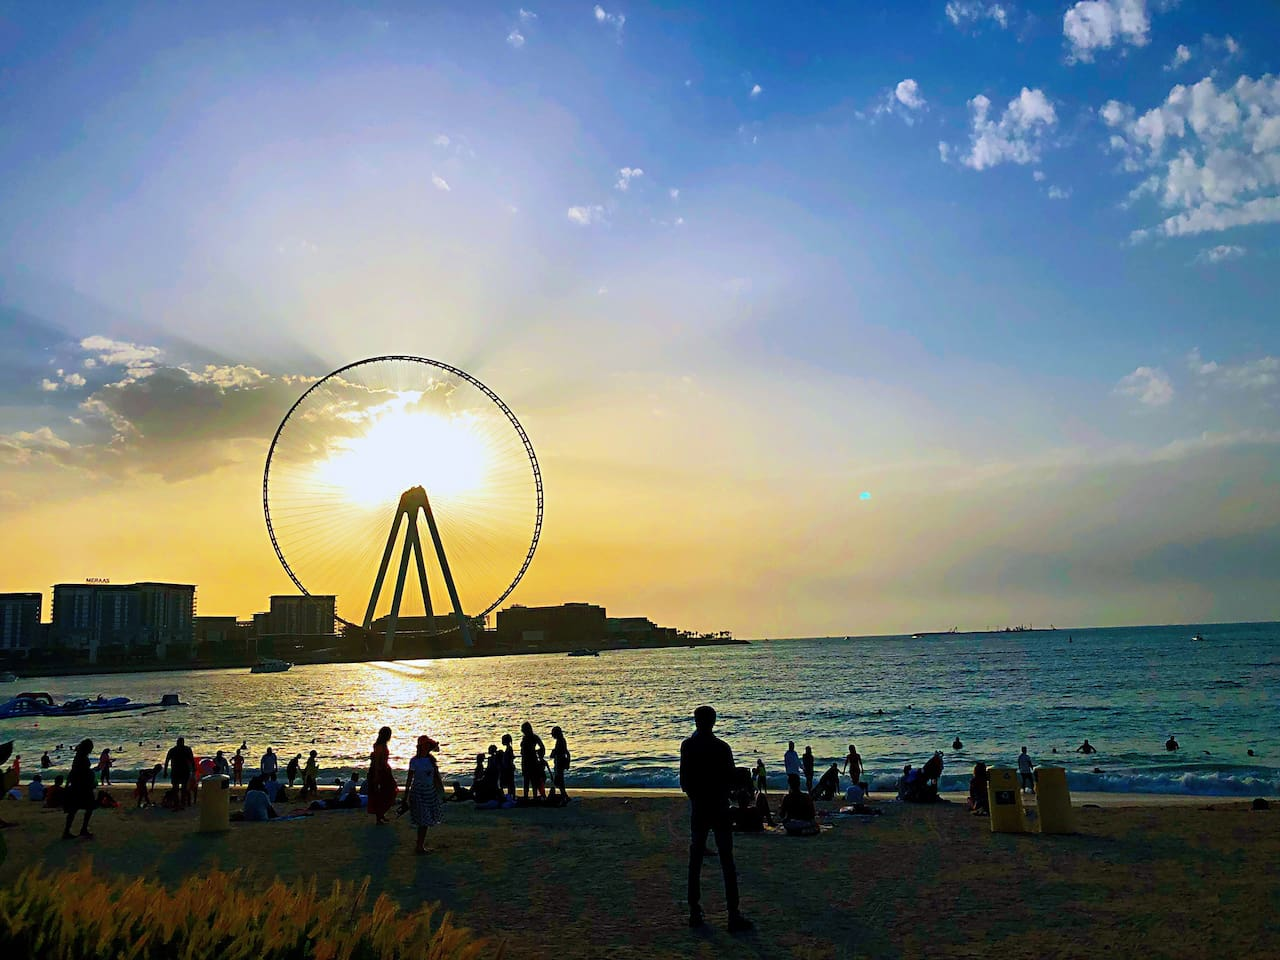 1-2 minuets by walking you can arrived to beach and see the Dubai eye JBR